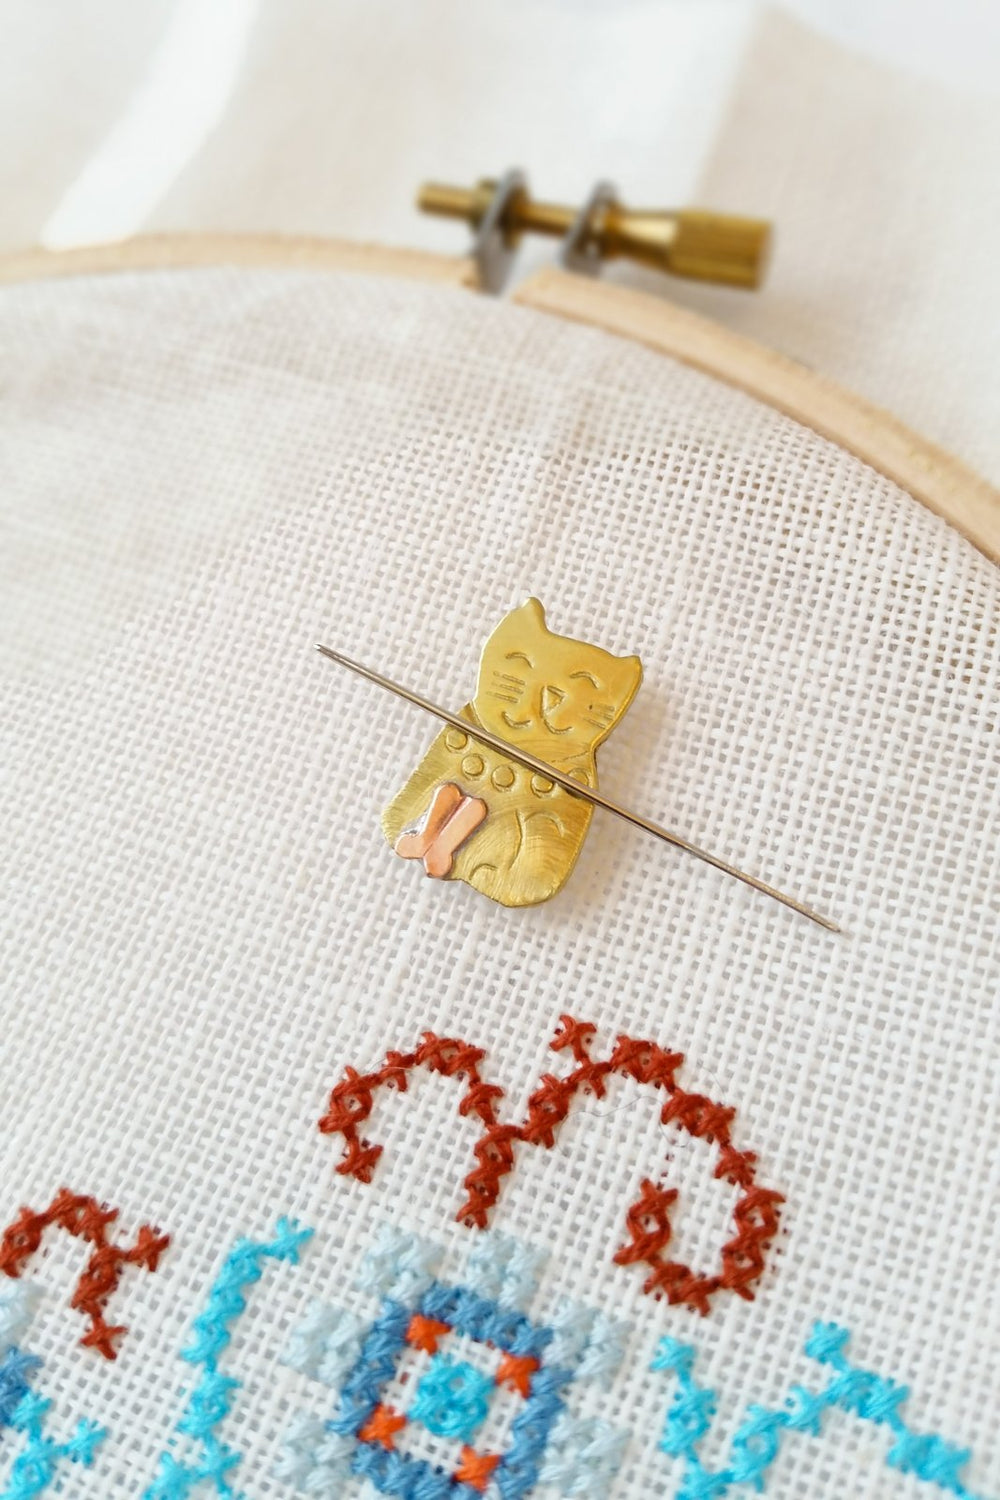 Mini Kitten Needle Minder